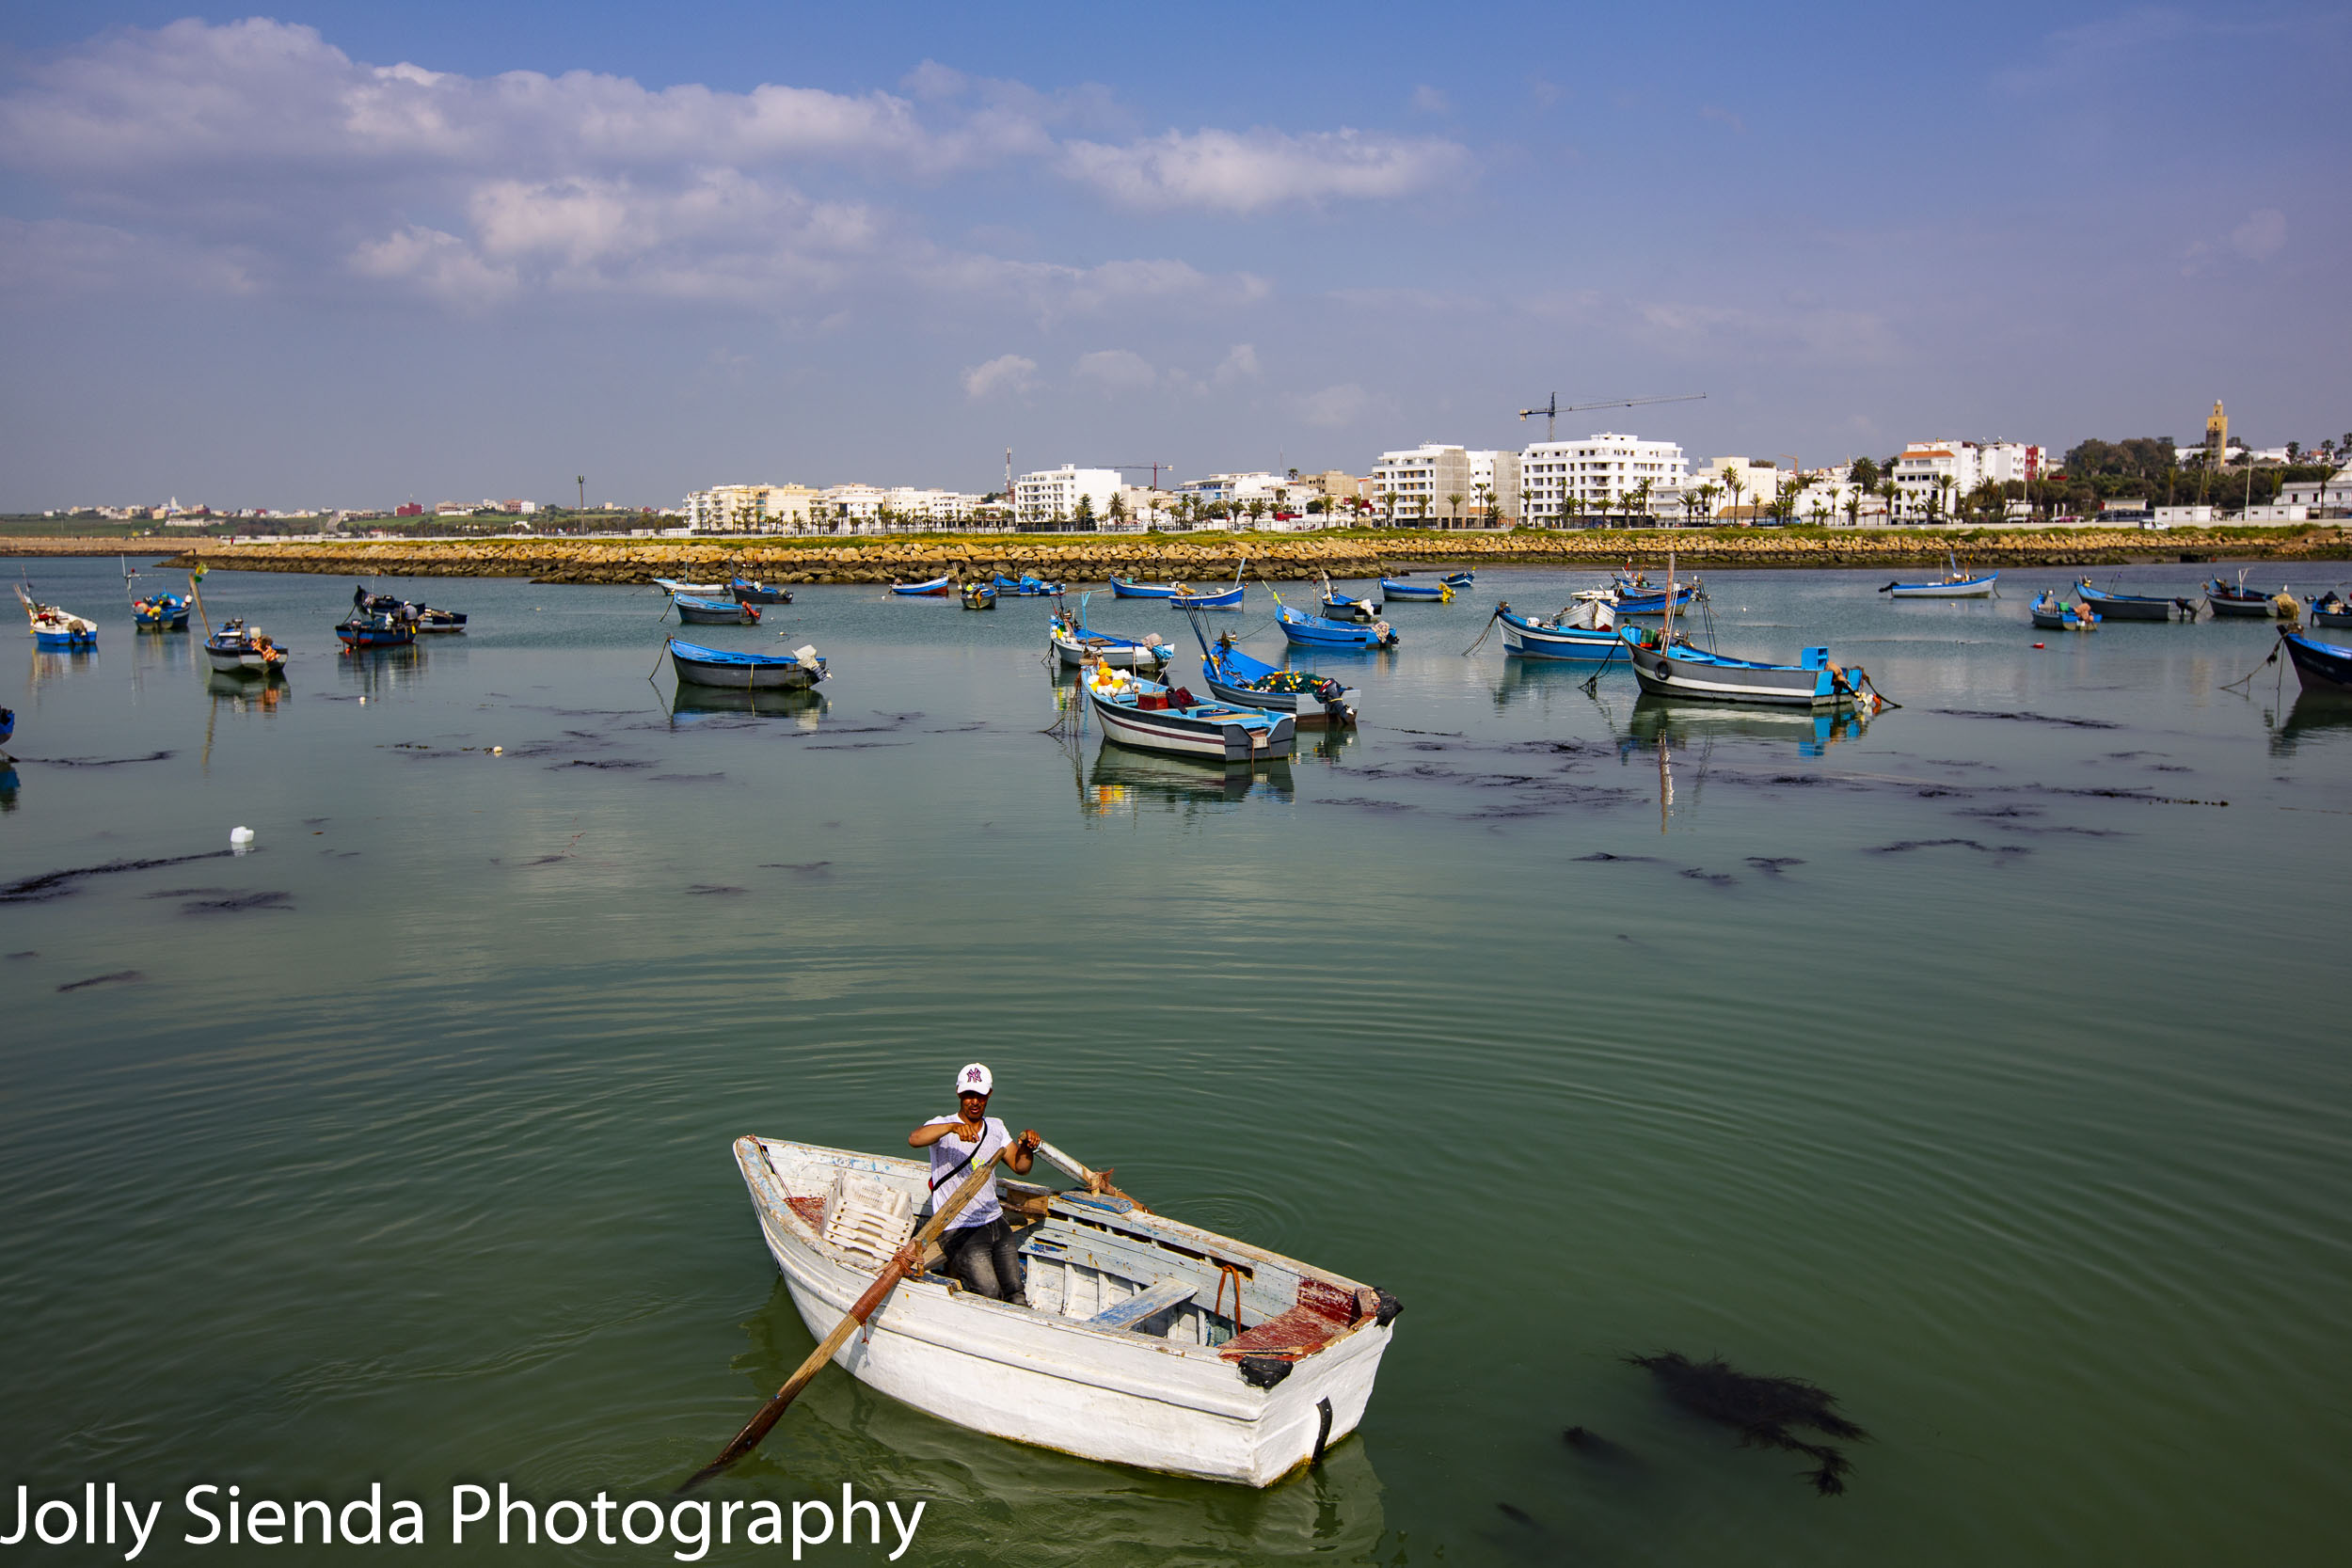 Fisherman and wooden blue boats